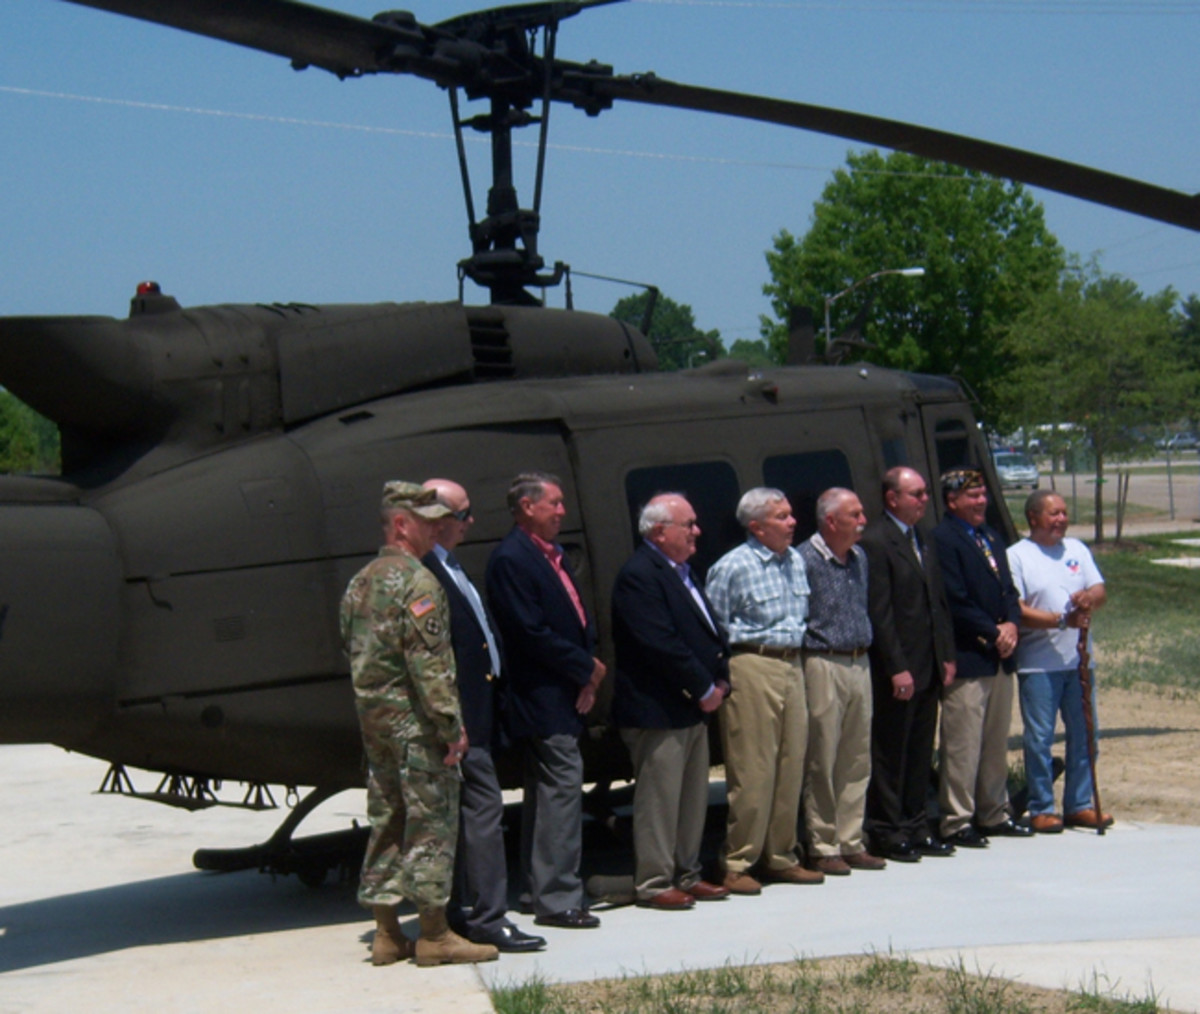 General Williams (on left) poses in front of the UH-1 Huey with some of the Vietnam veterans who were awarded their Vietnam Service pin.